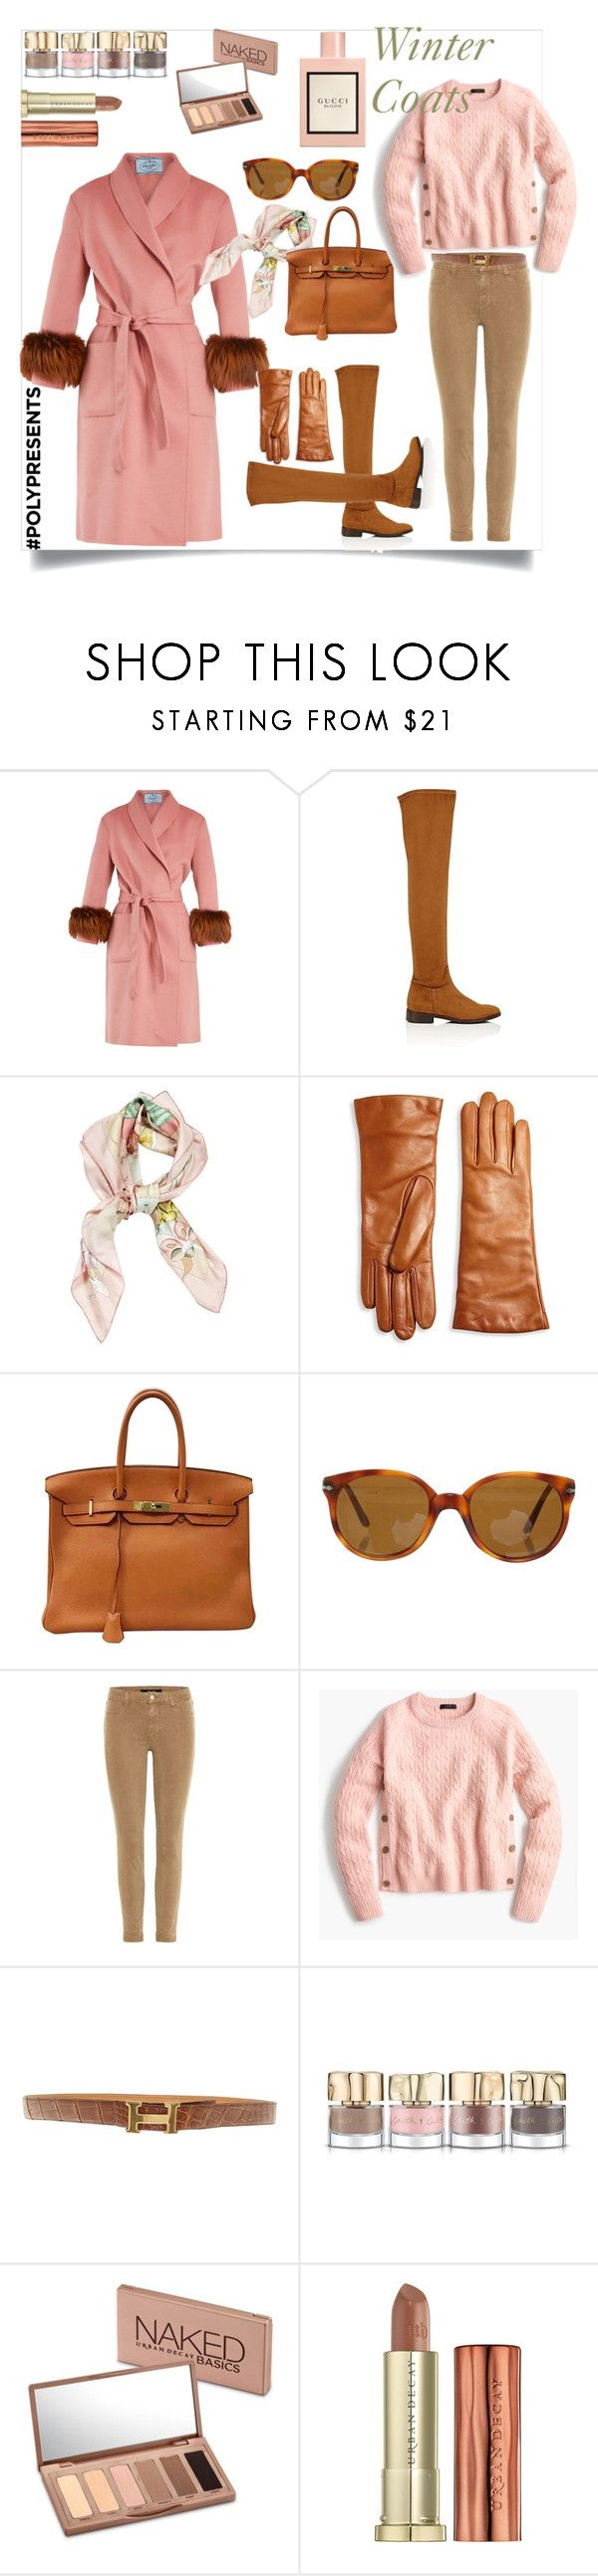 """""""Sunday morning in Montenapoleone"""" by oliviabing ❤ liked on Polyvore featuring Prada, Barneys New York, Hermès, Saks Fifth Avenue Collection, Persol, J Brand, J.Crew, Smith & Cult, Urban Decay and Gucci"""